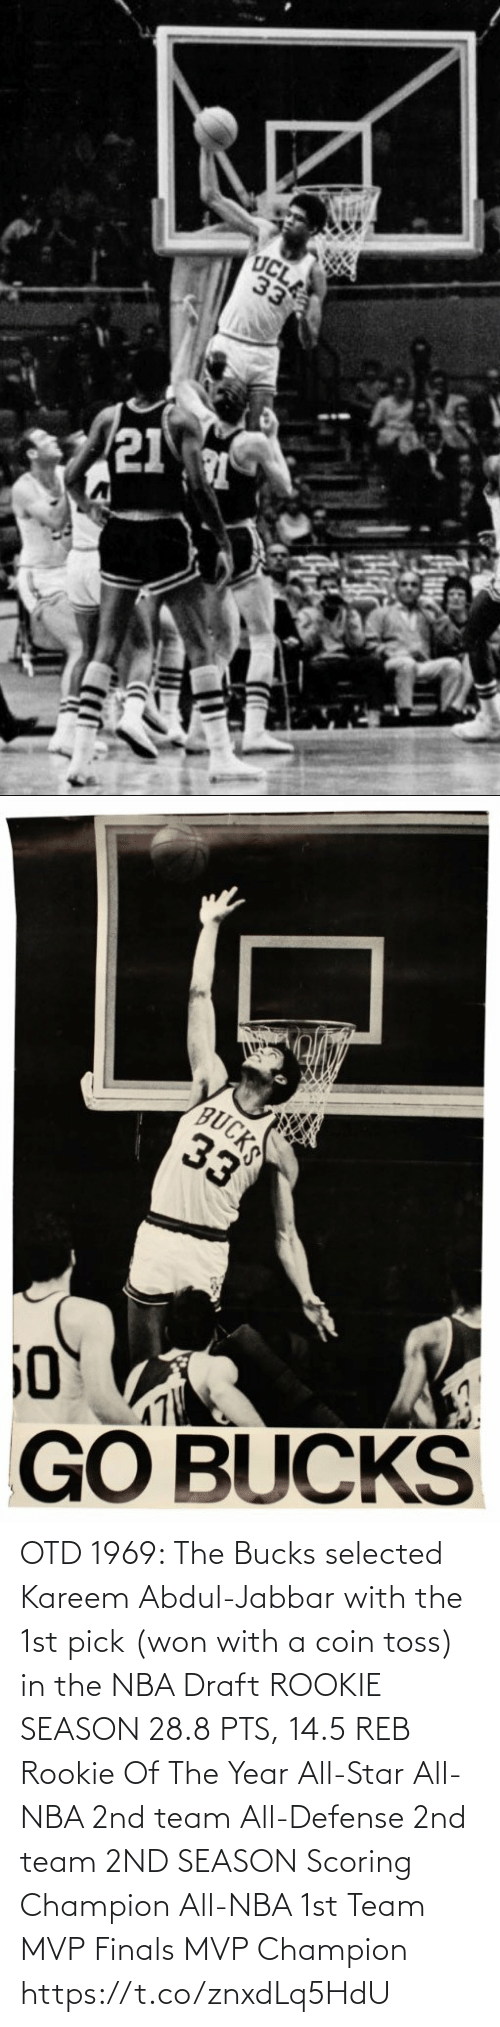 defense: OTD 1969: The Bucks selected Kareem Abdul-Jabbar with the 1st pick (won with a coin toss) in the NBA Draft   ROOKIE SEASON 28.8 PTS, 14.5 REB Rookie Of The Year All-Star All-NBA 2nd team All-Defense 2nd team  2ND SEASON Scoring Champion All-NBA 1st Team MVP Finals MVP Champion https://t.co/znxdLq5HdU